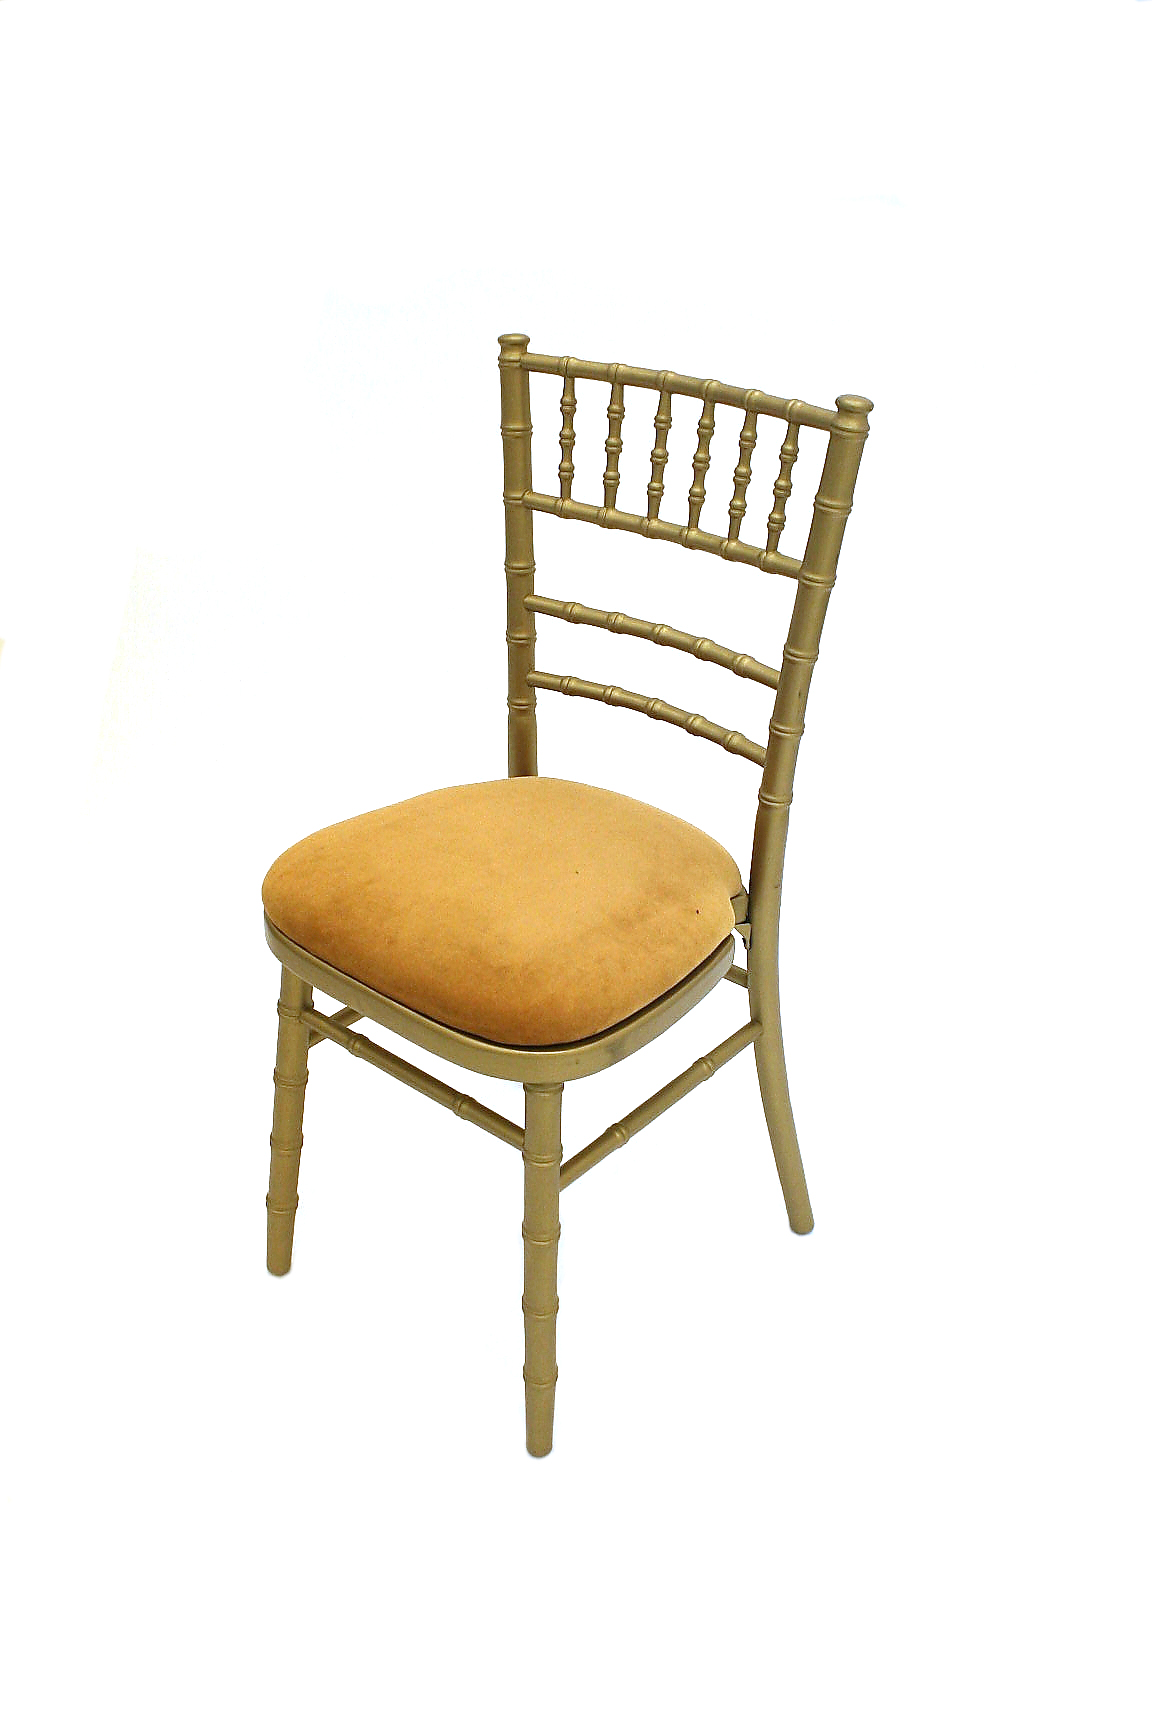 Gold Chivari Chair Hire - Weddings, Event Chair Hire - BE Event Hire